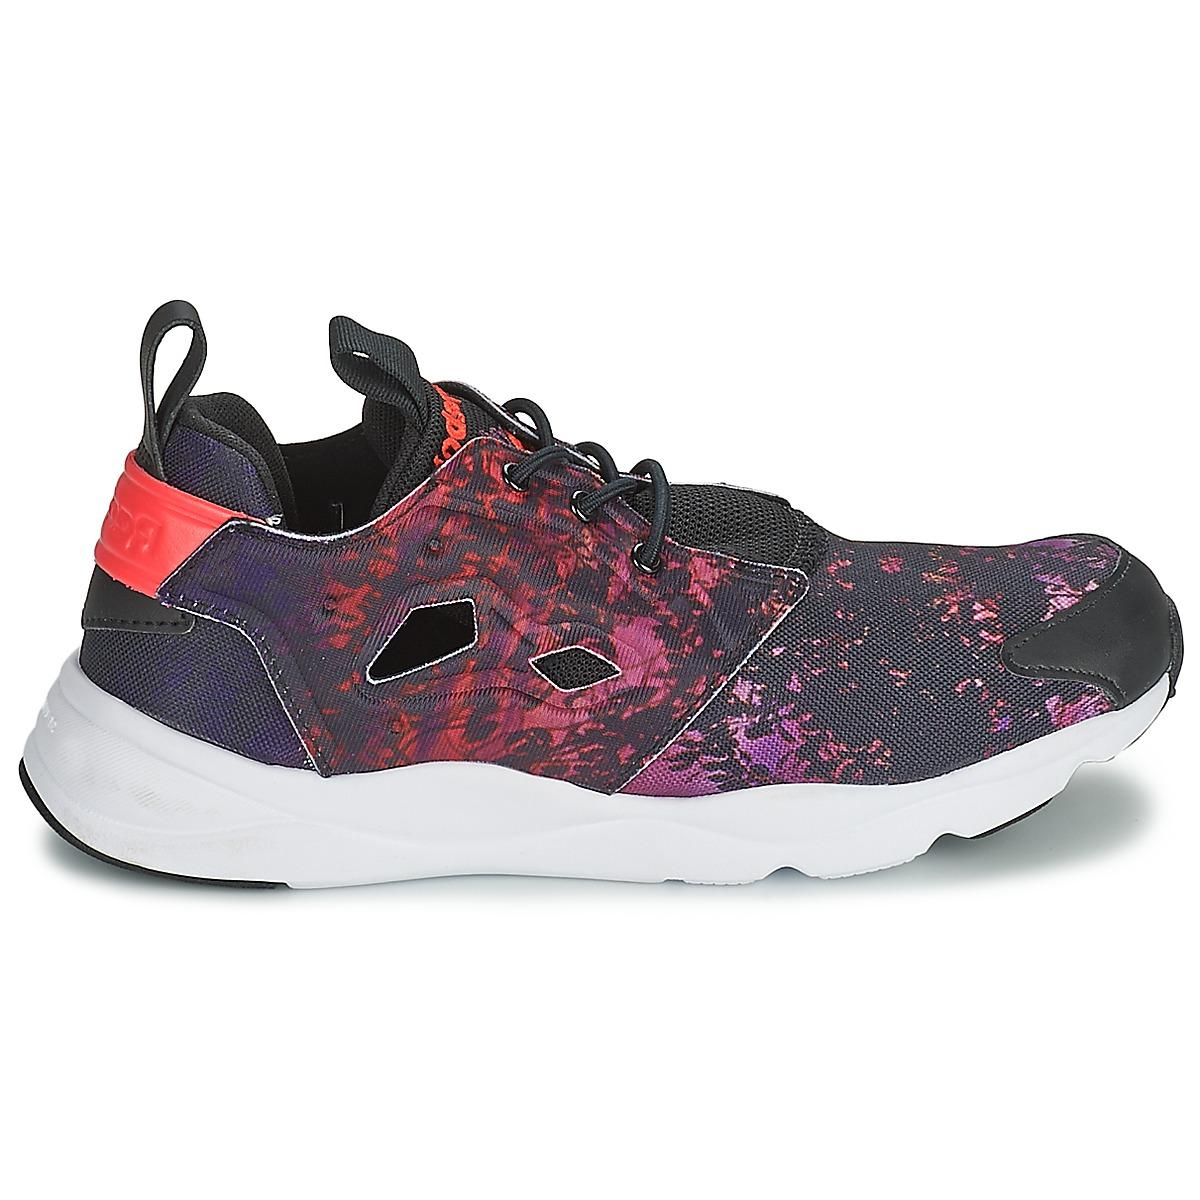 Reebok - Furylite Sr Women s Shoes (trainers) In Black - Lyst. View  fullscreen ac5e43e83